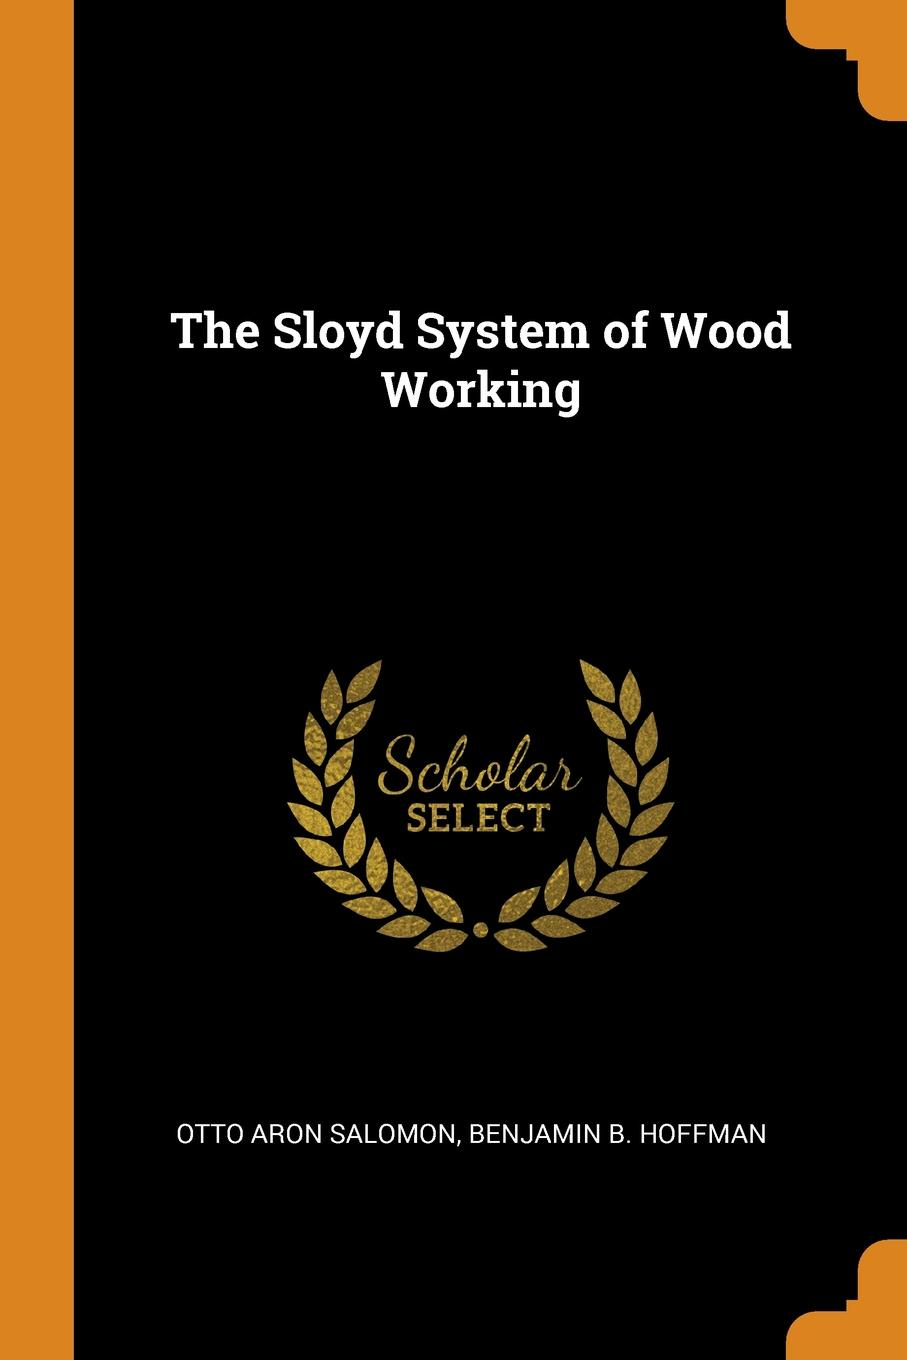 Otto Aron Salomon, Benjamin B. Hoffman. The Sloyd System of Wood Working